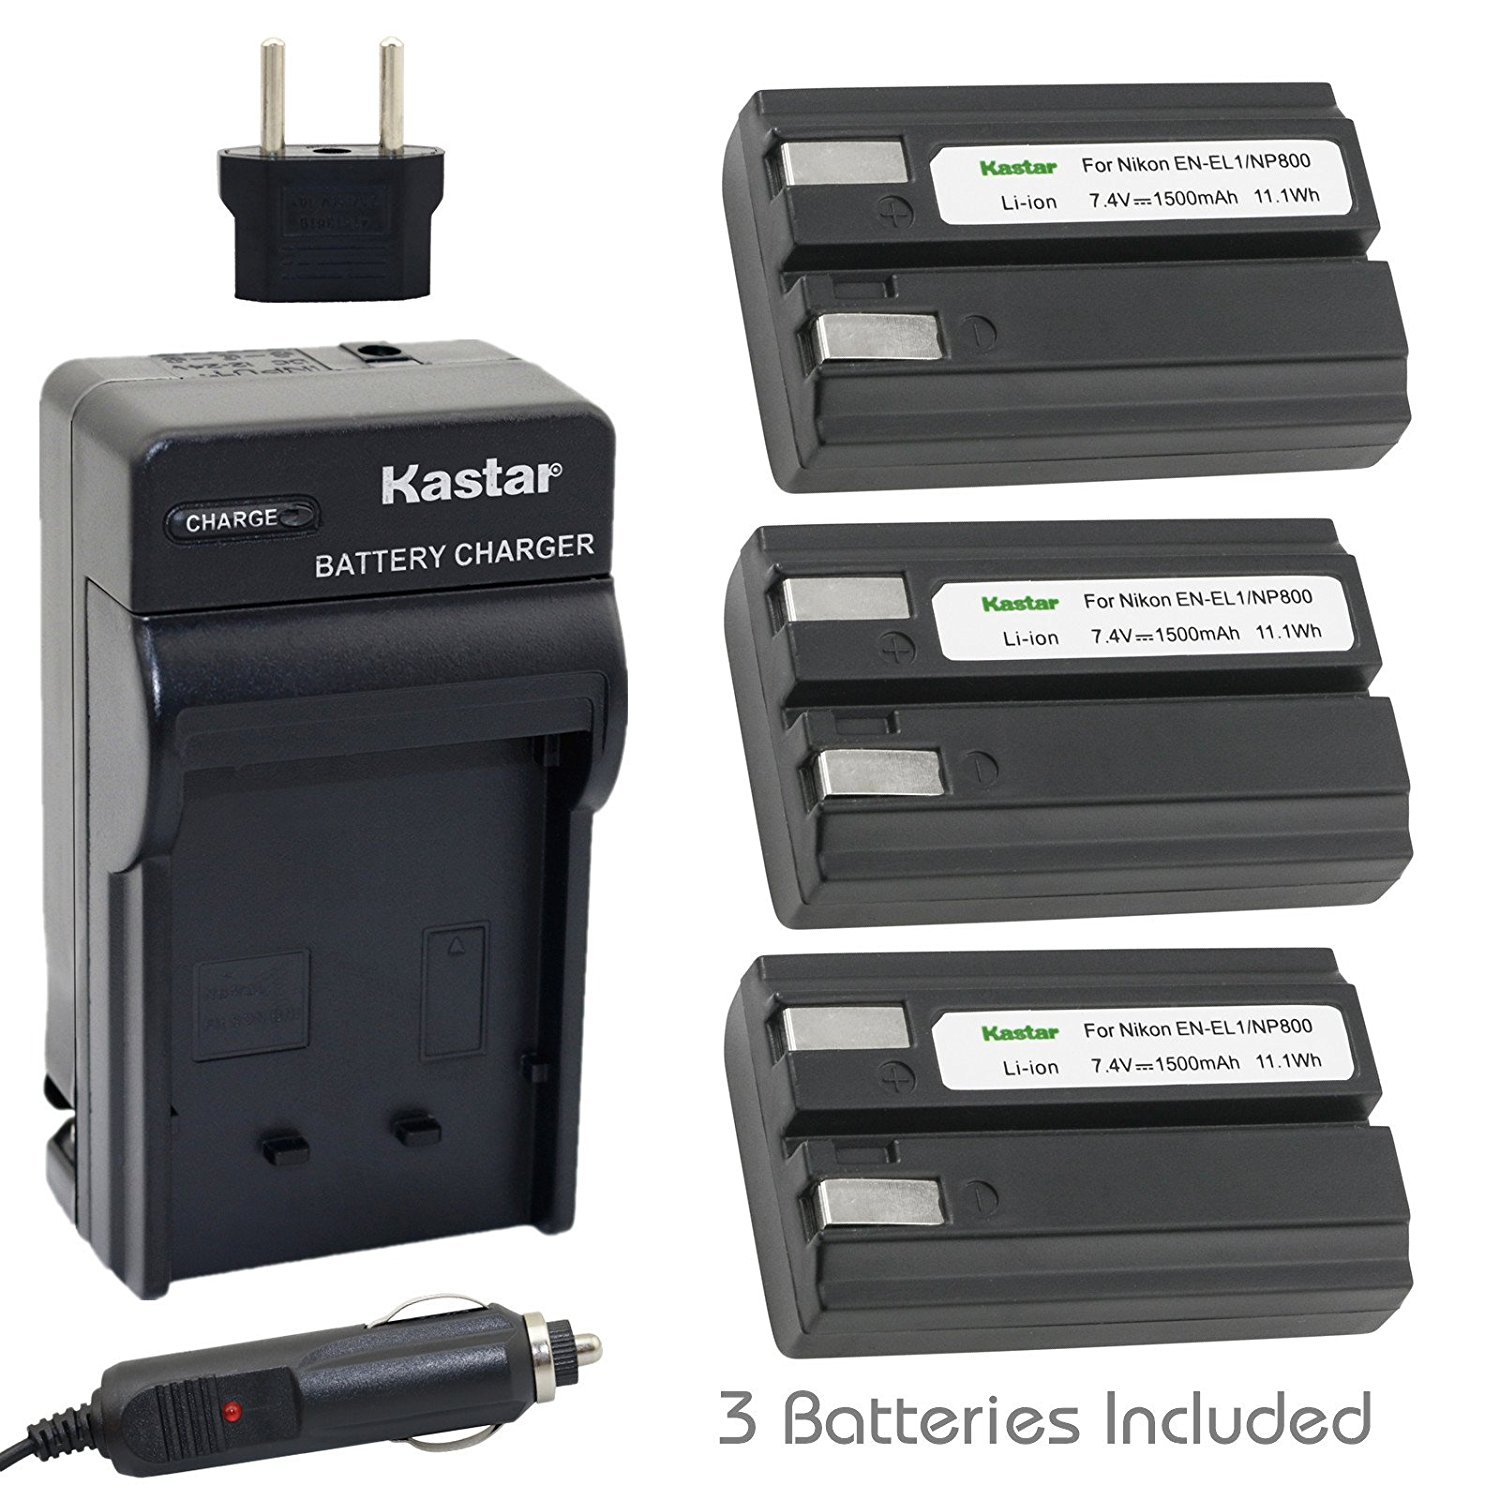 US plug COOLPIX 8700 5700 5400 5000 4800 4500 4300 995 885 880 775 with car adapter DC09 Battery Charger Compatible with Nikon MH-53 for EN-EL1